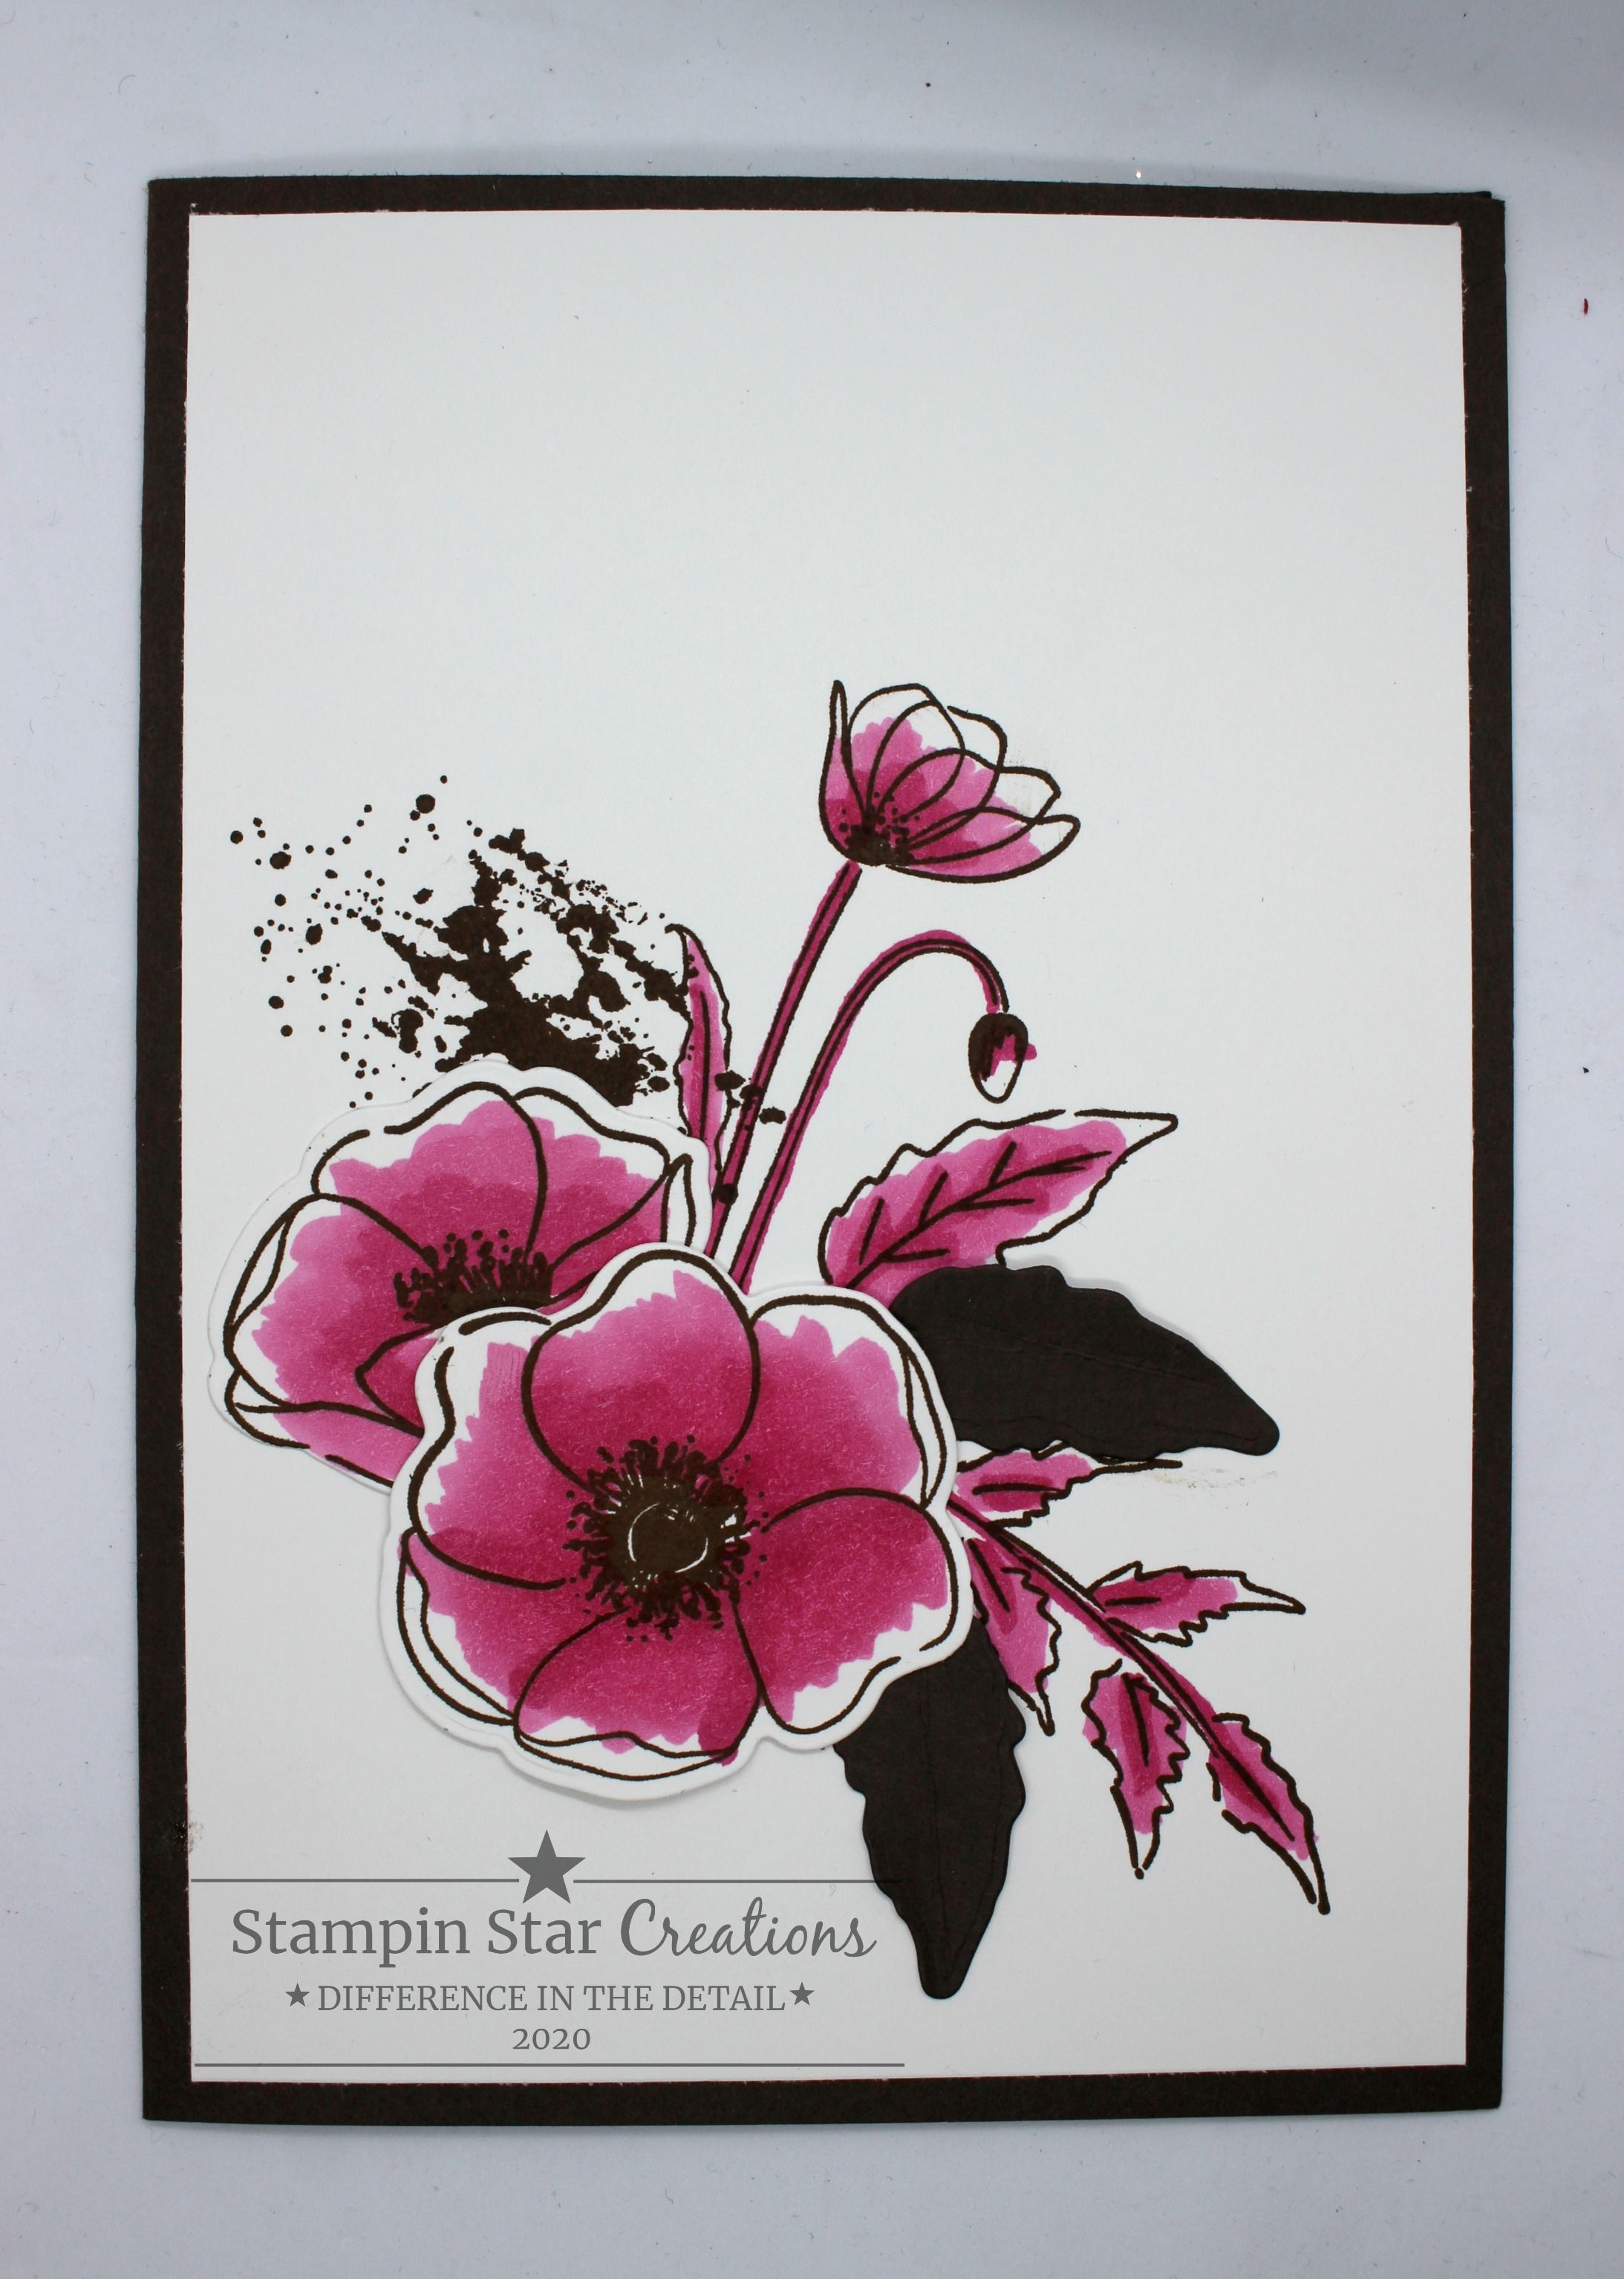 Photo of Painted Poppies Suite, Stampin Up, Poppy Card